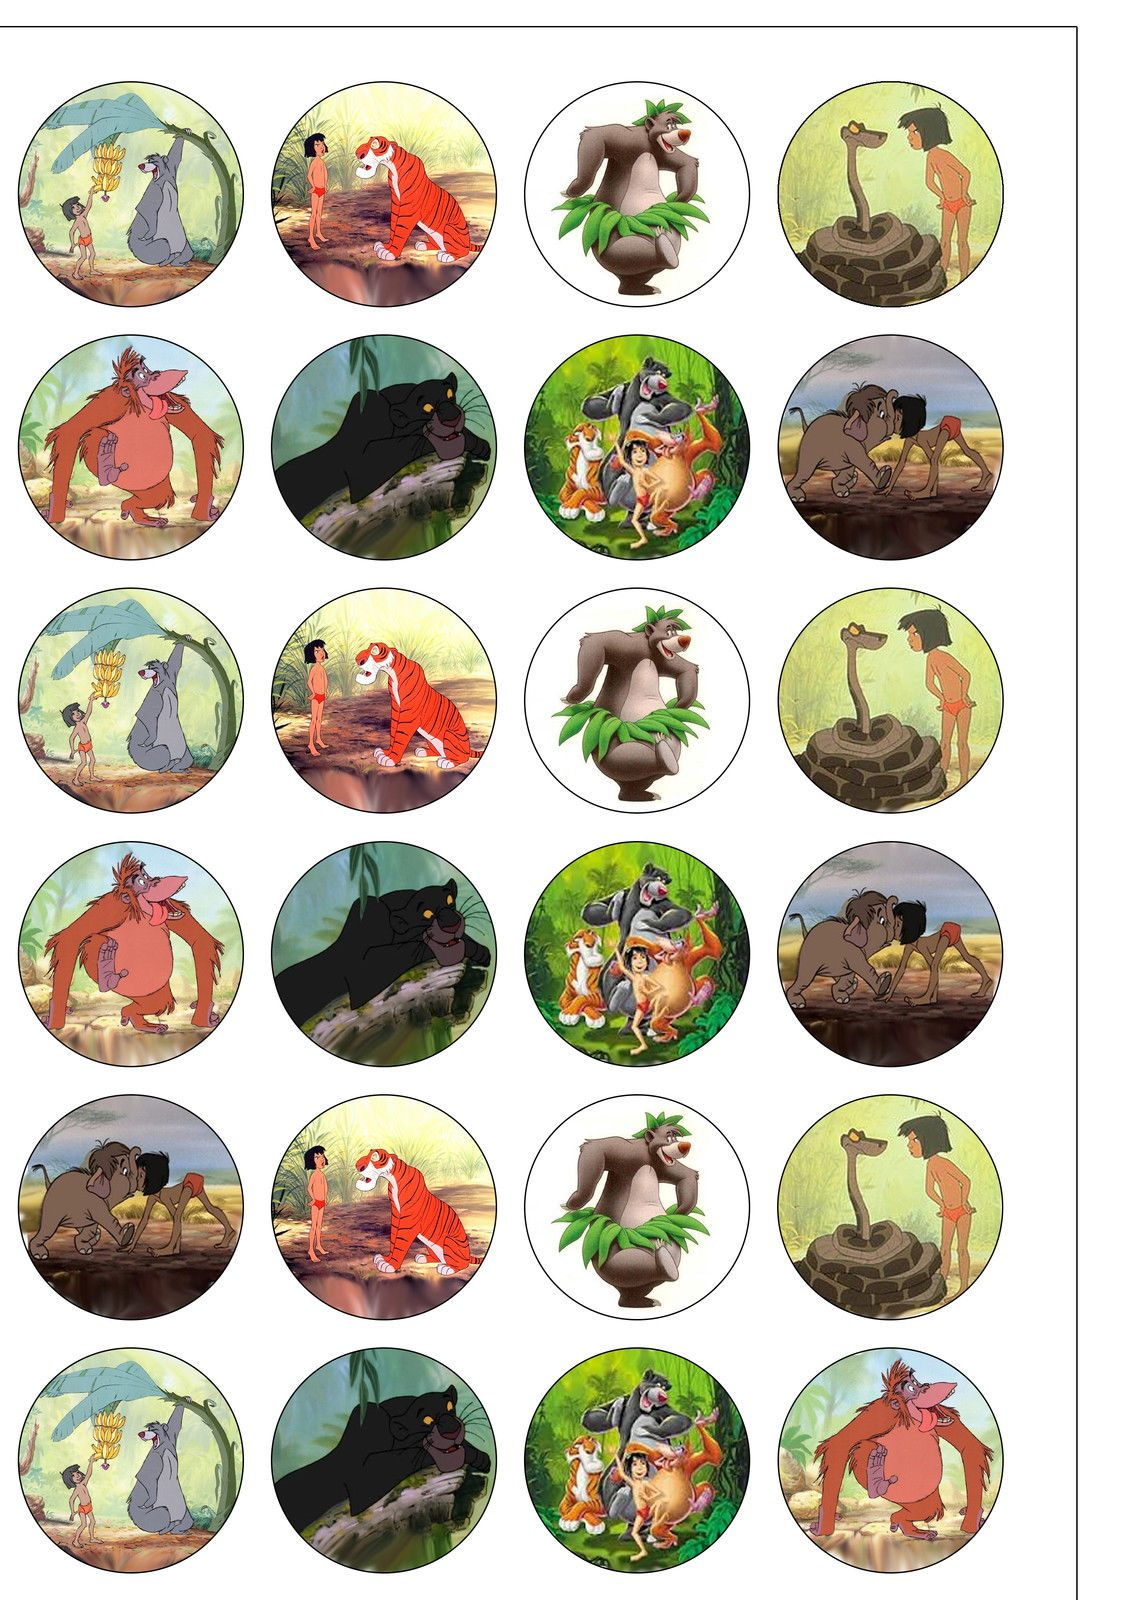 24 Precut Round The Jungle Book Edible Wafer Rice Paper Cupcake Cake Toppers